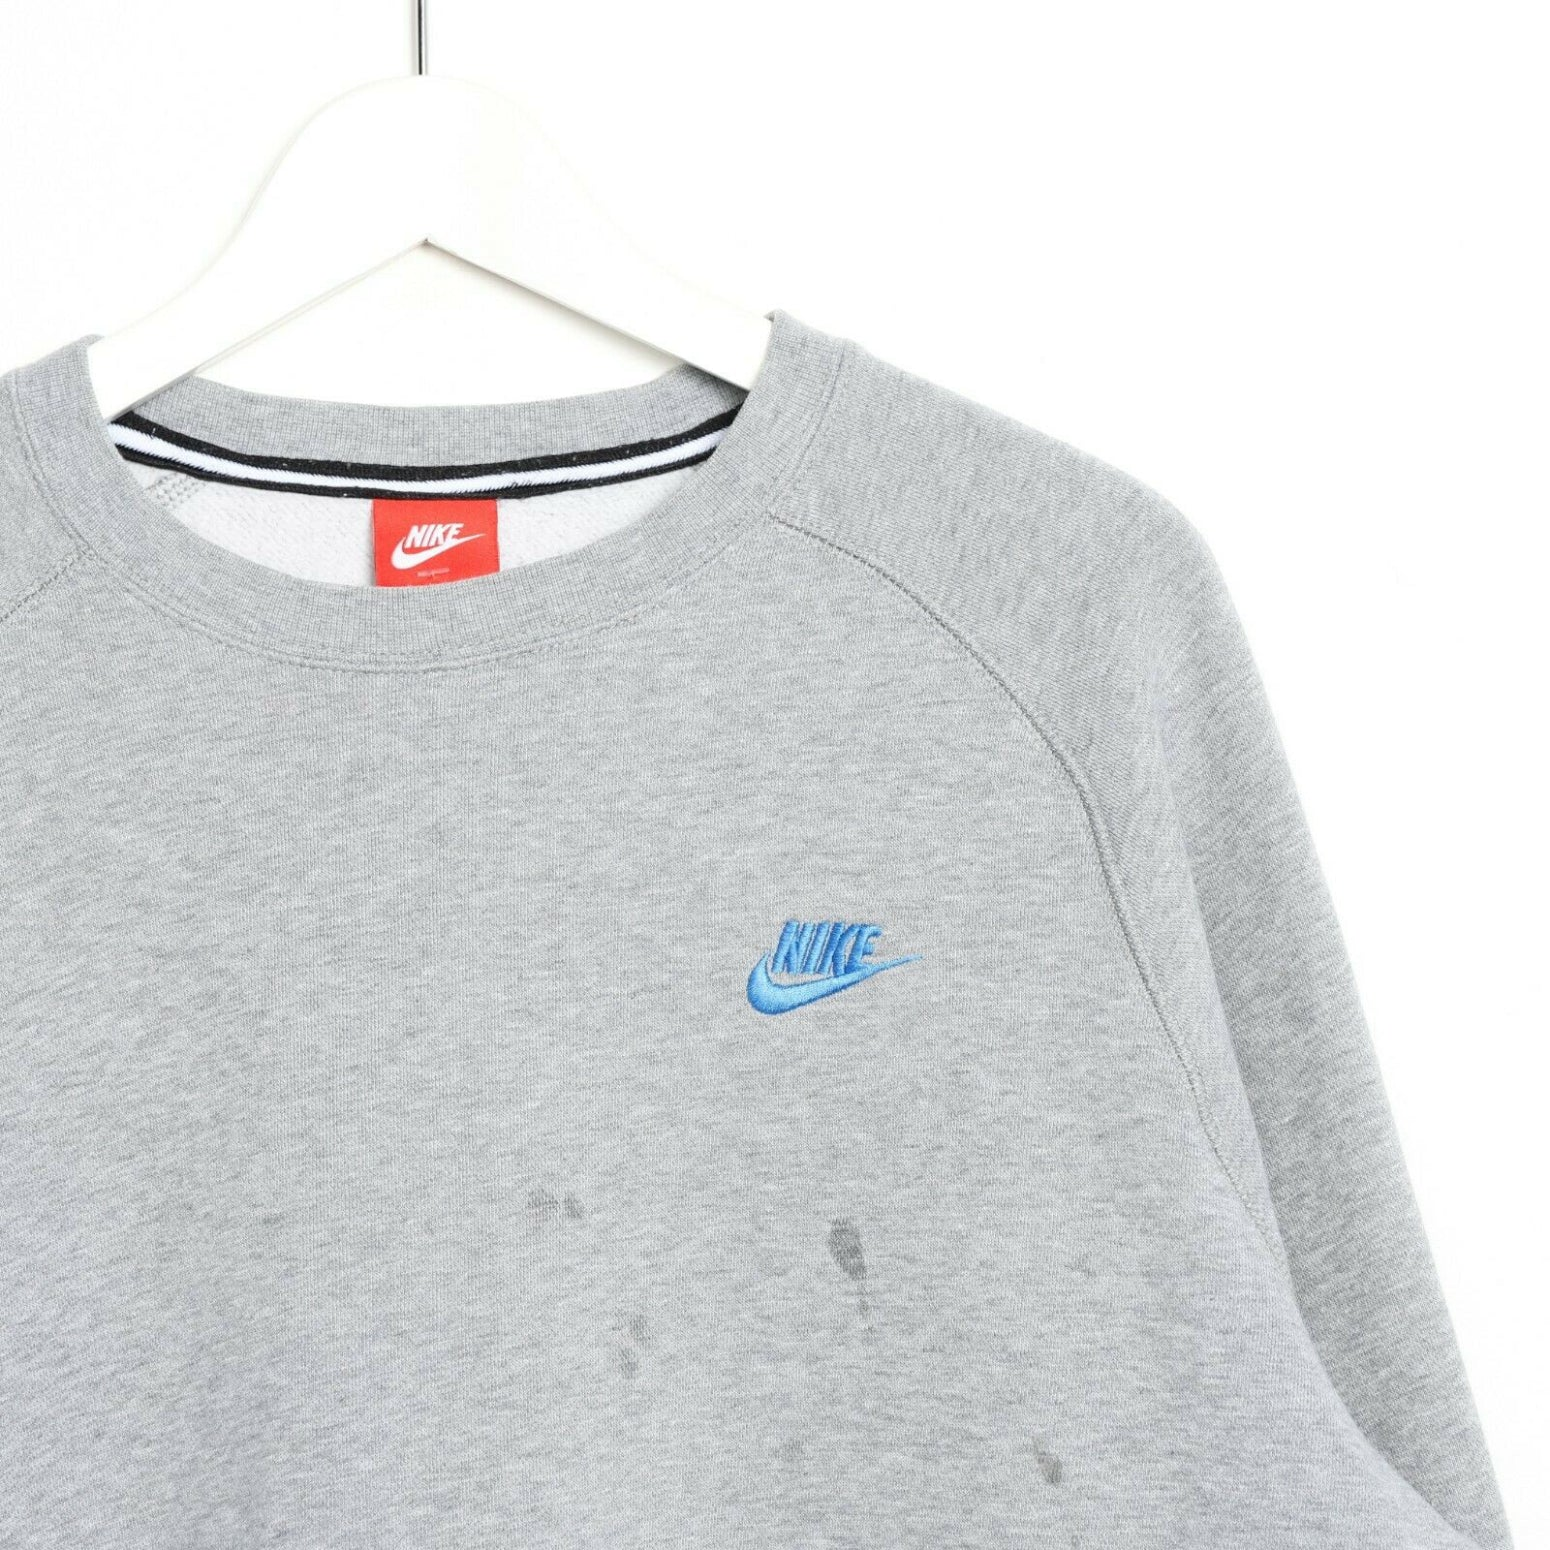 Vintage NIKE Small Logo Sweatshirt Jumper Grey | XL